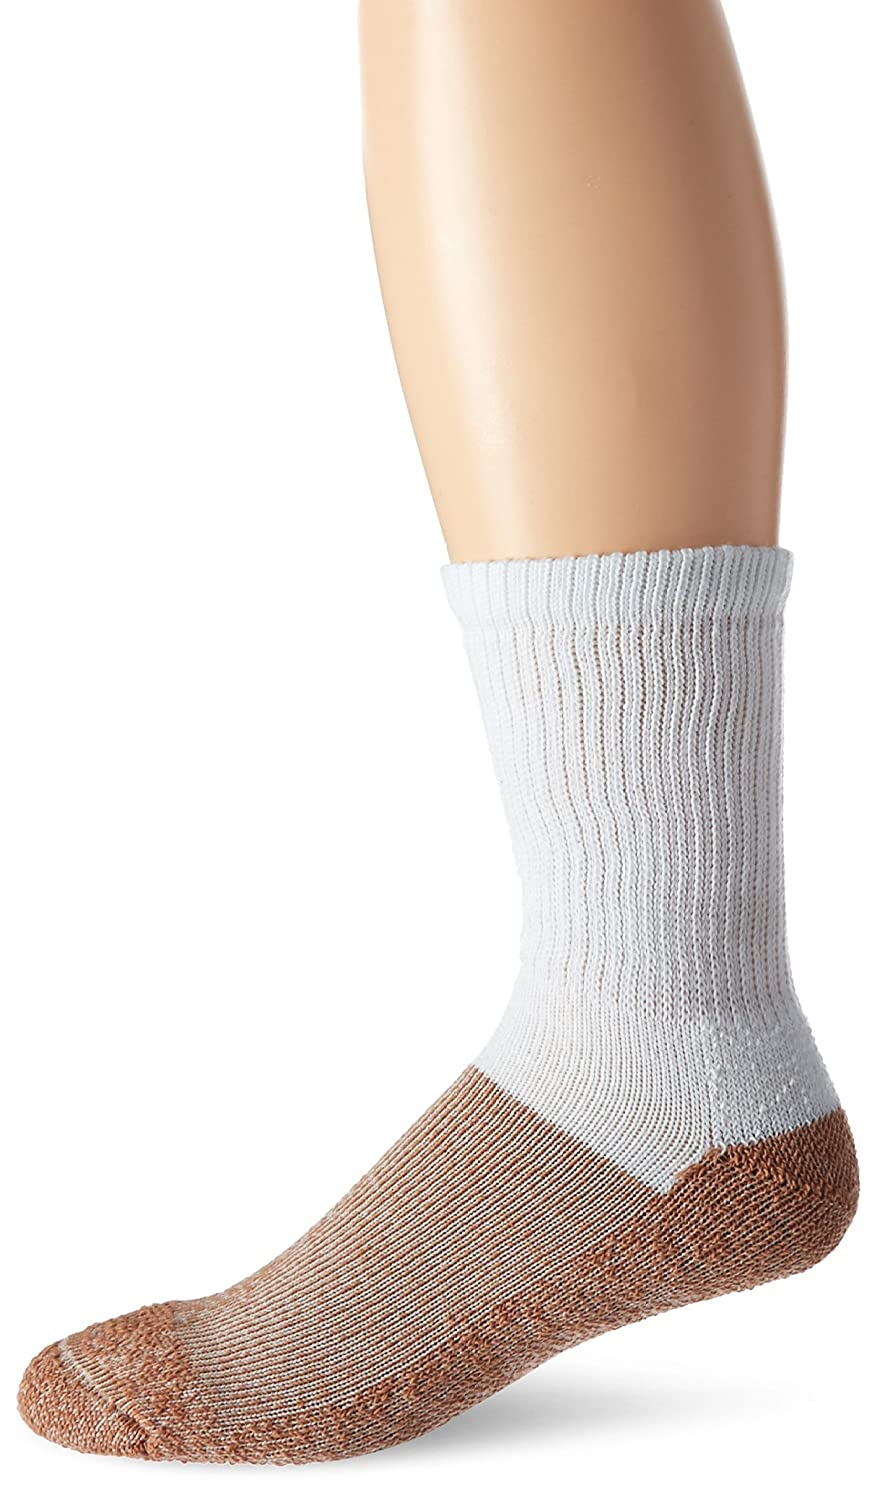 Copper Sole Men's Pro Therapy Cupron Crew Socks CSCU-2051